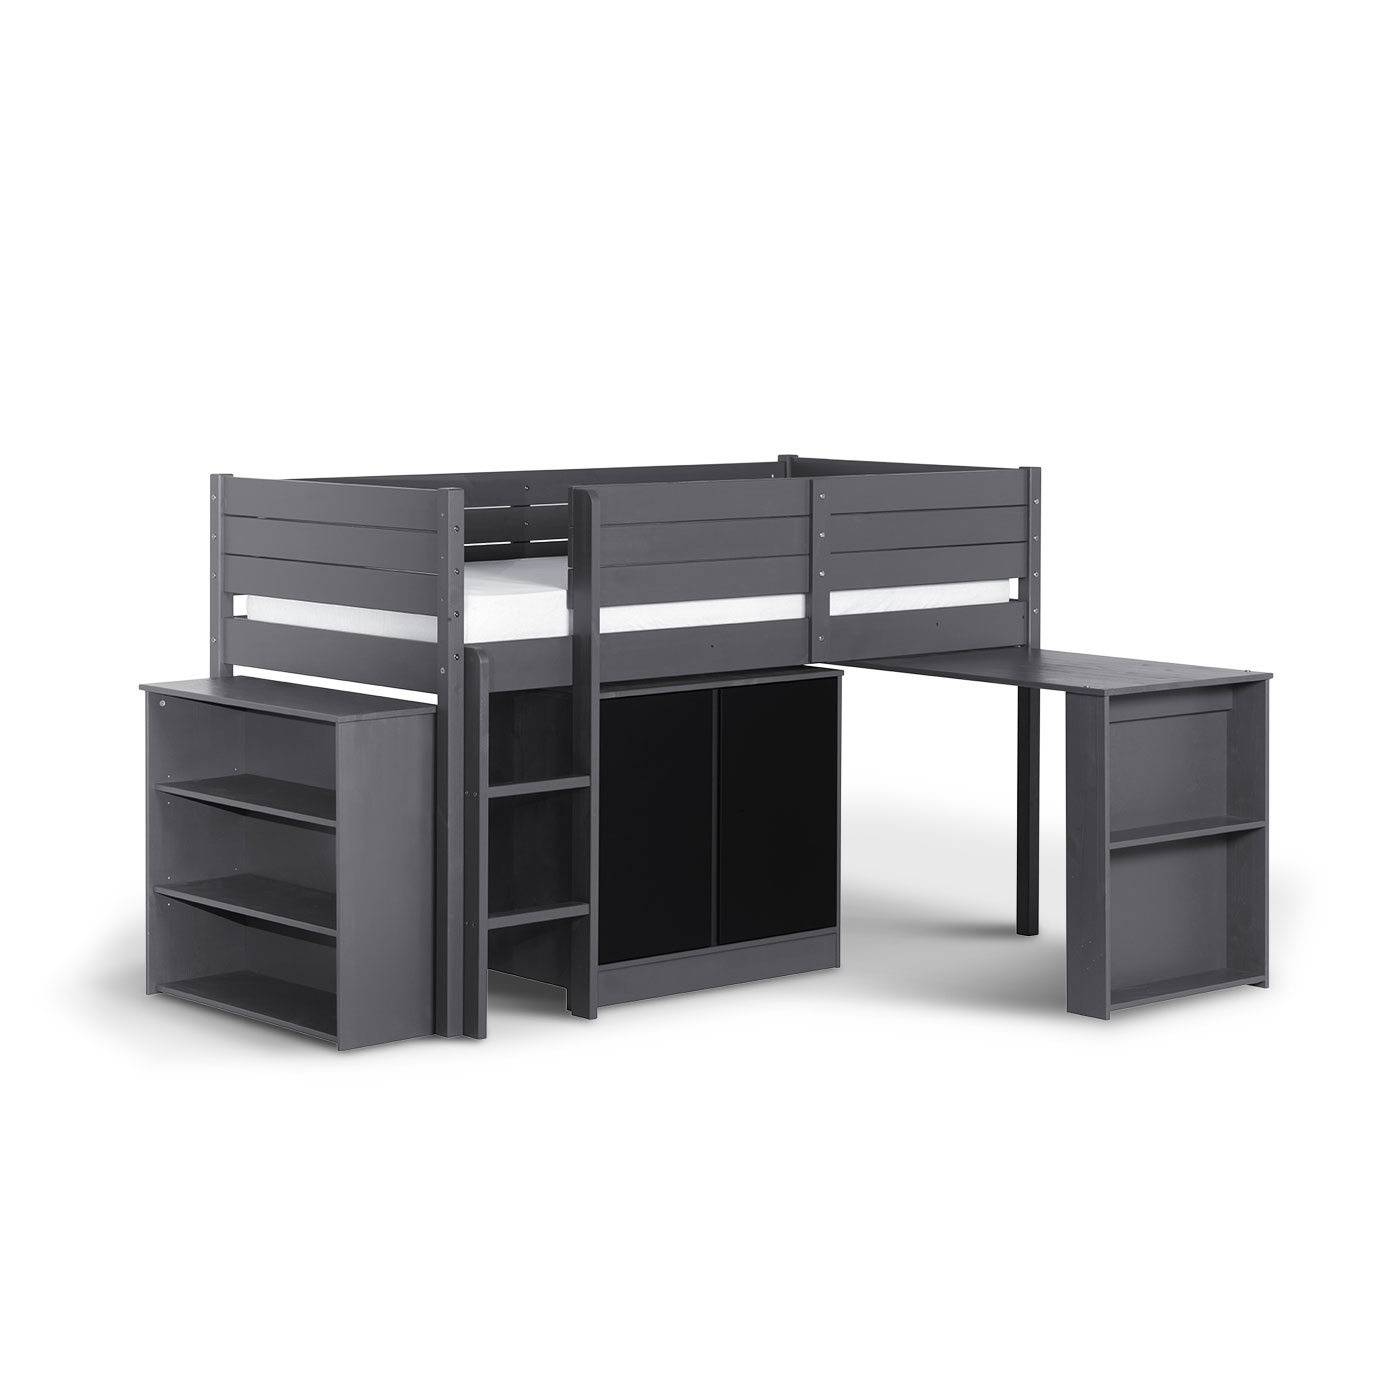 lit mi hauteur garcon perfect lit mi haut enfant lit mi hauteur ikea un lit mezzanine enfant a. Black Bedroom Furniture Sets. Home Design Ideas